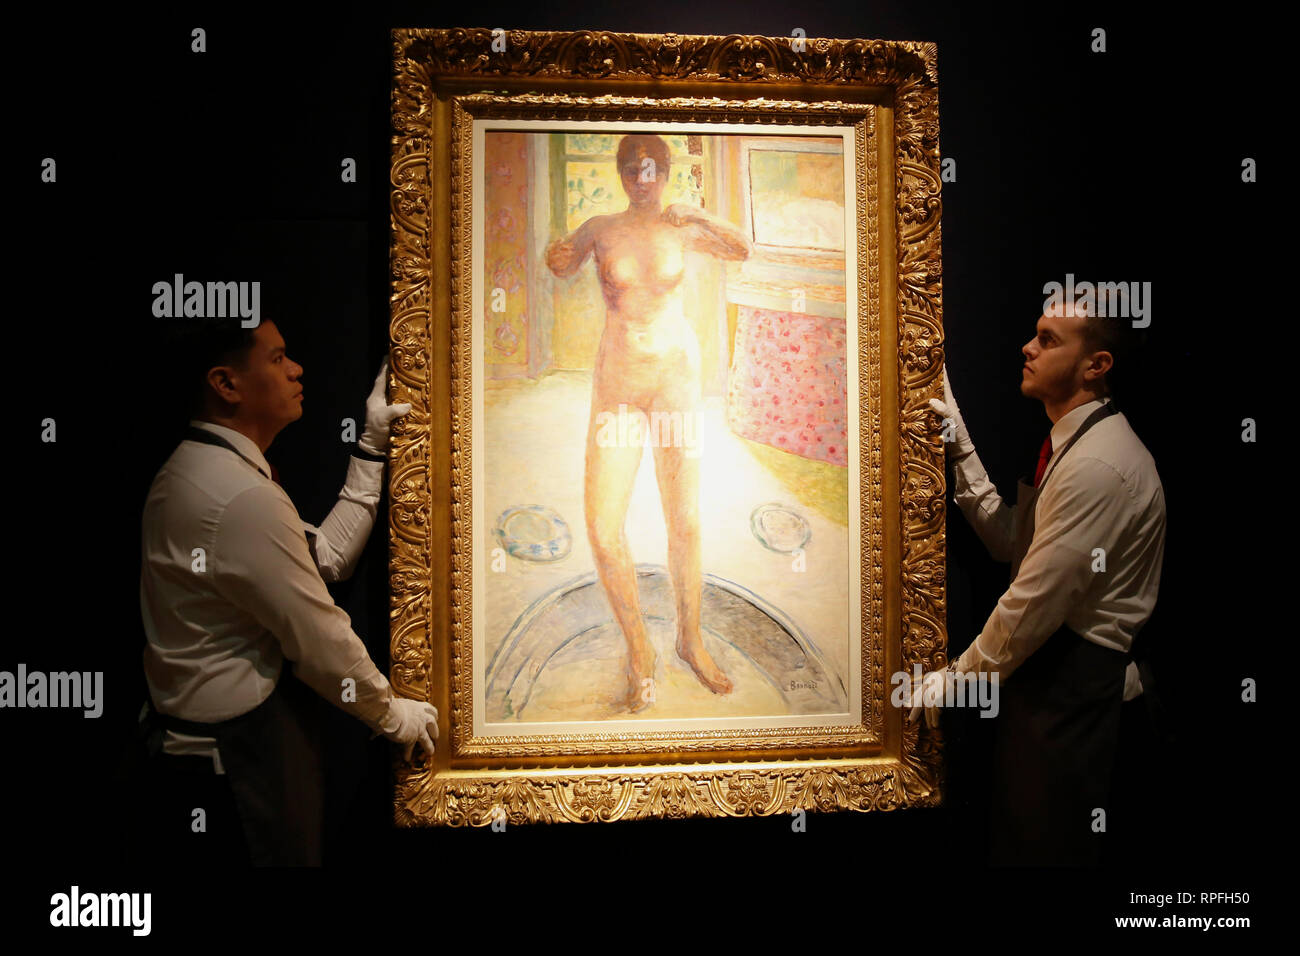 London, UK. 21st February, 2019. Christie's employees pose with artwork 'Femme au tub' by Pierre Bonnard at Christie's Auction House in London, Thursday February 21, 2019. The piece will be sold at auction during Christie's evening sale on Wednesday, and is expected to achieve an estimate of up to £6million. Photograph : Credit: Luke MacGregor/Alamy Live News - Stock Image